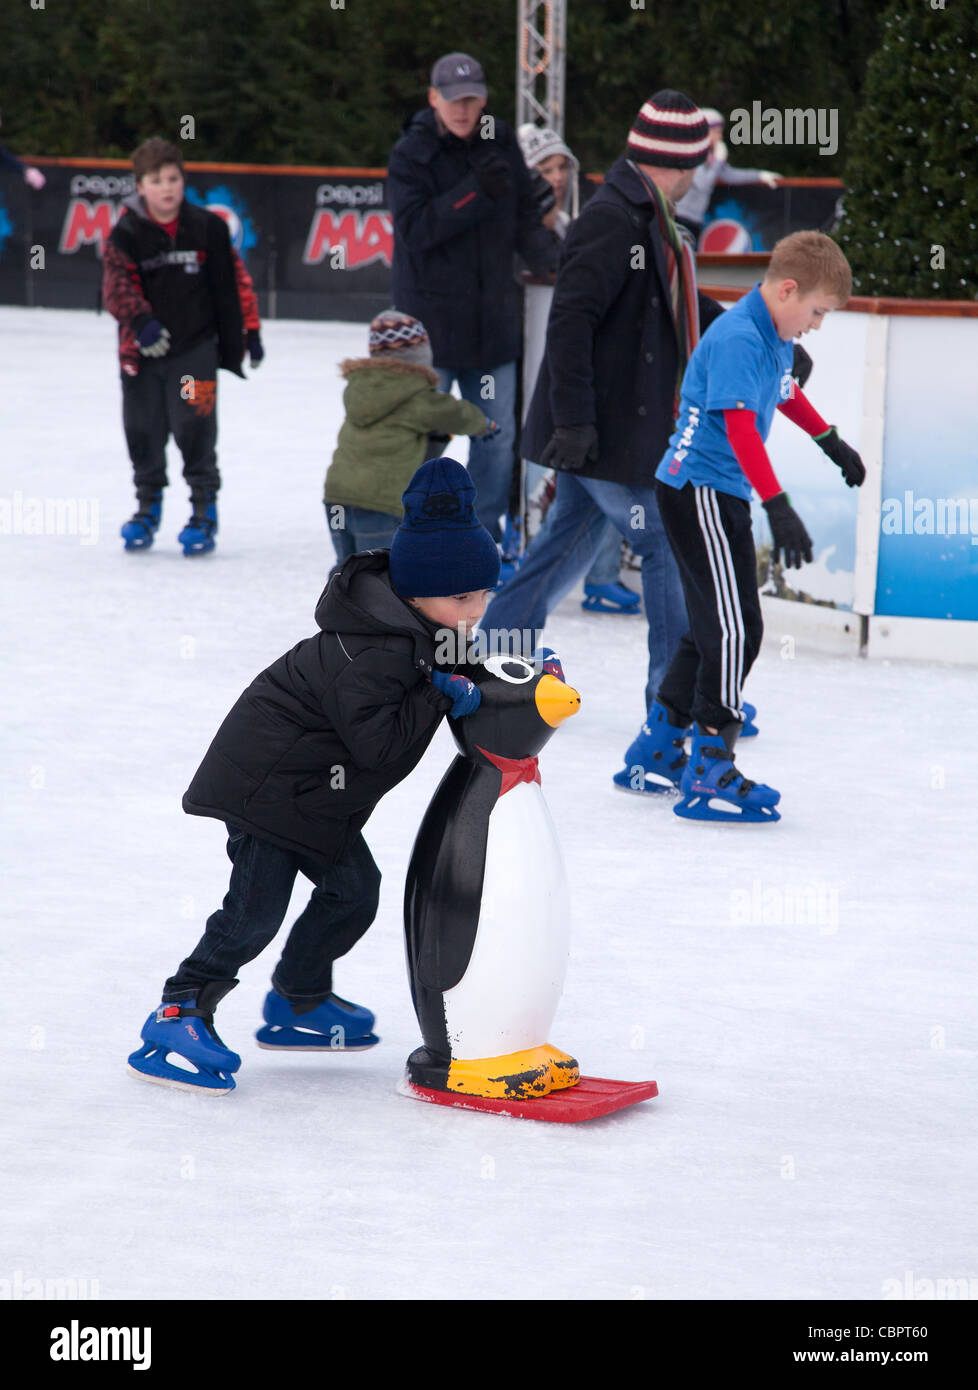 Learning to ice stake - Stock Image